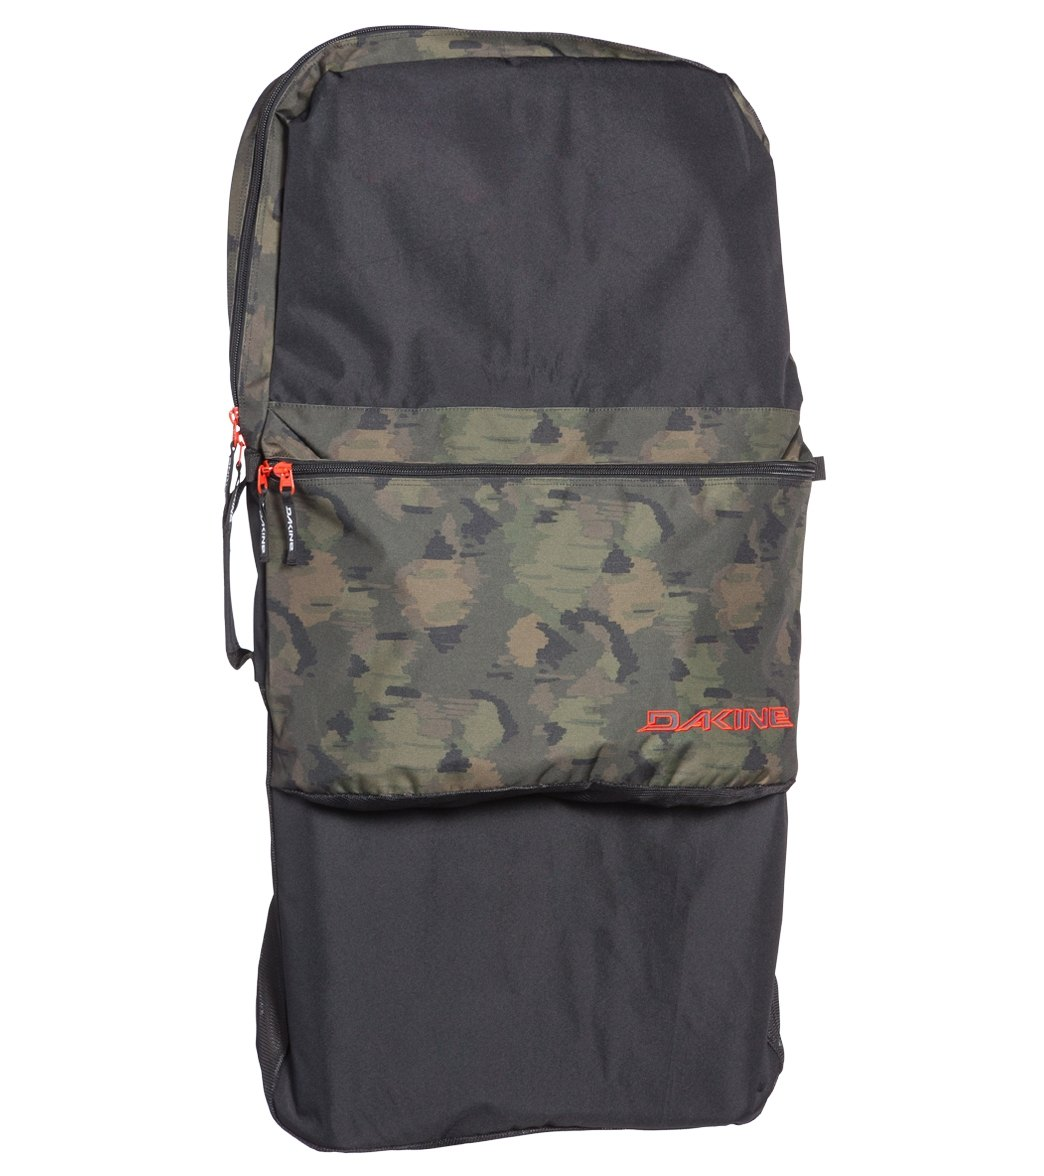 96f3a5a92f ... Dakine Deluxe Bodyboard Backpack. Share